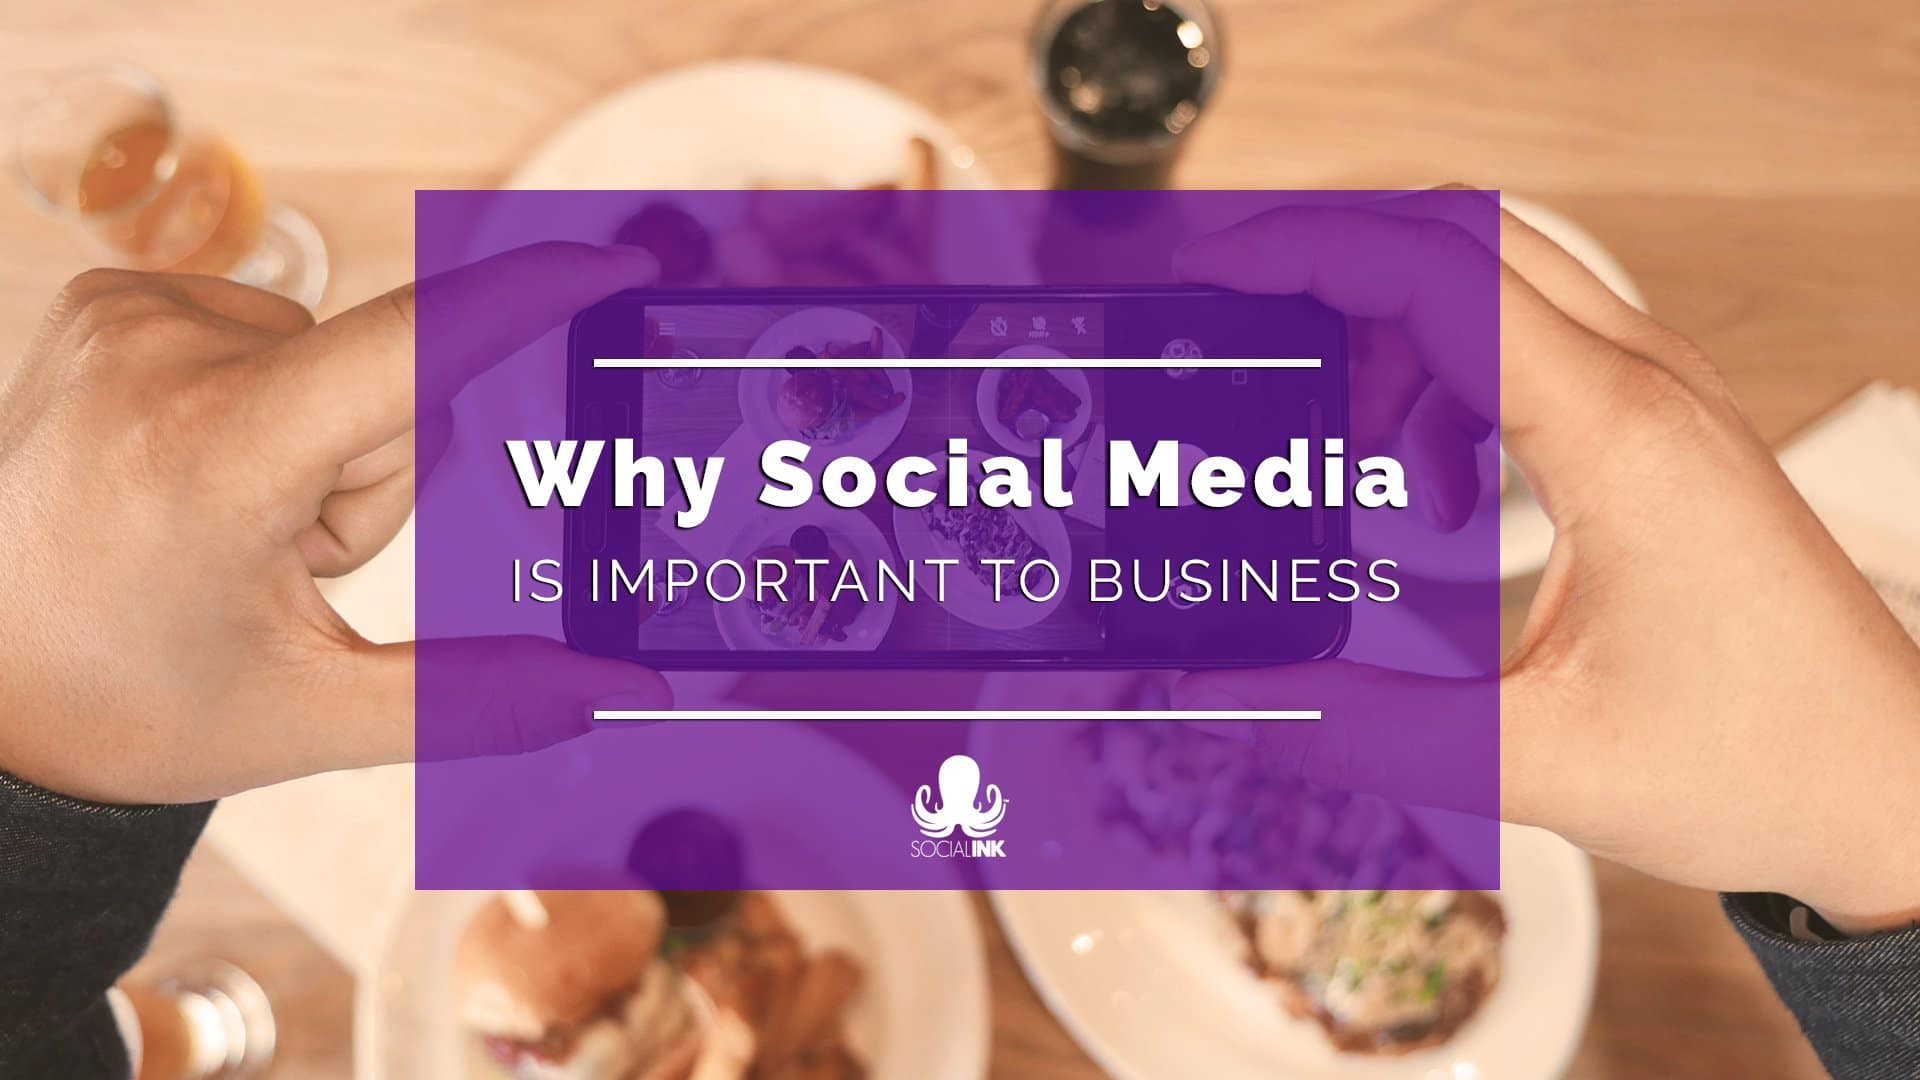 Why Social Media Is Important to Business